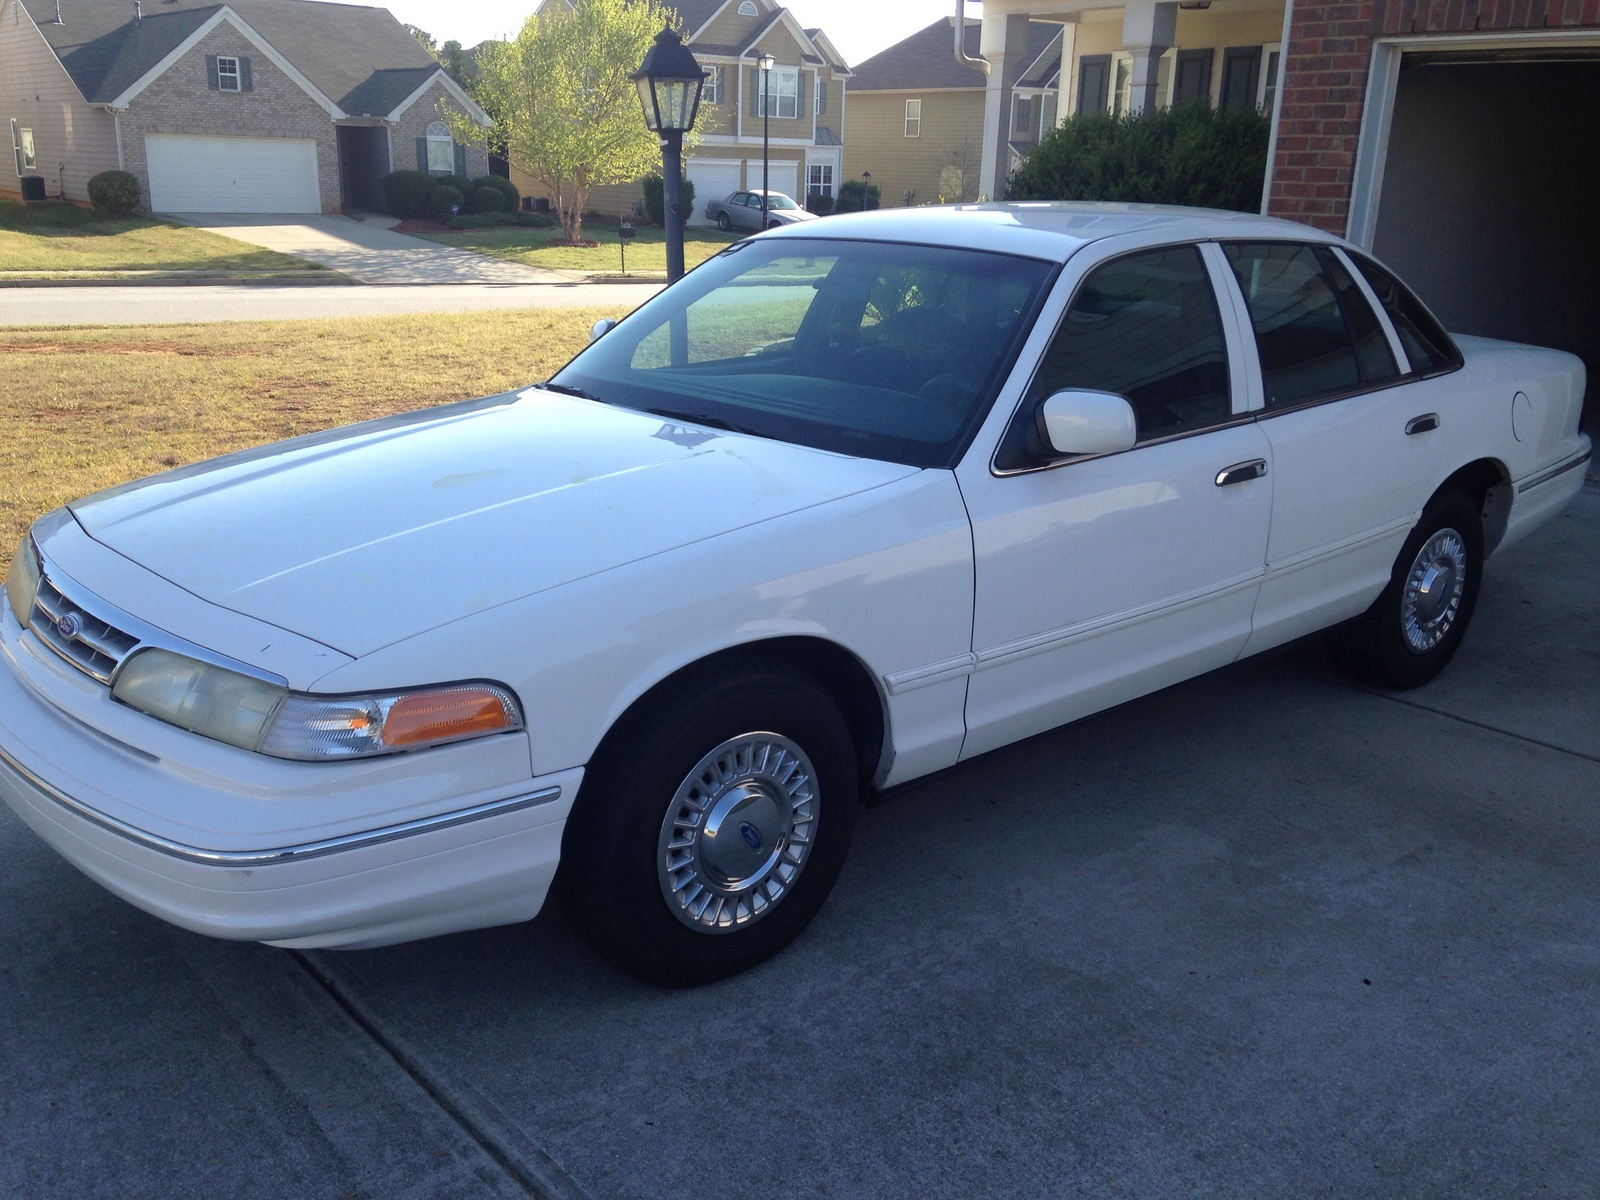 Picture of 1996 Ford Crown Victoria 4 Dr S Sedan